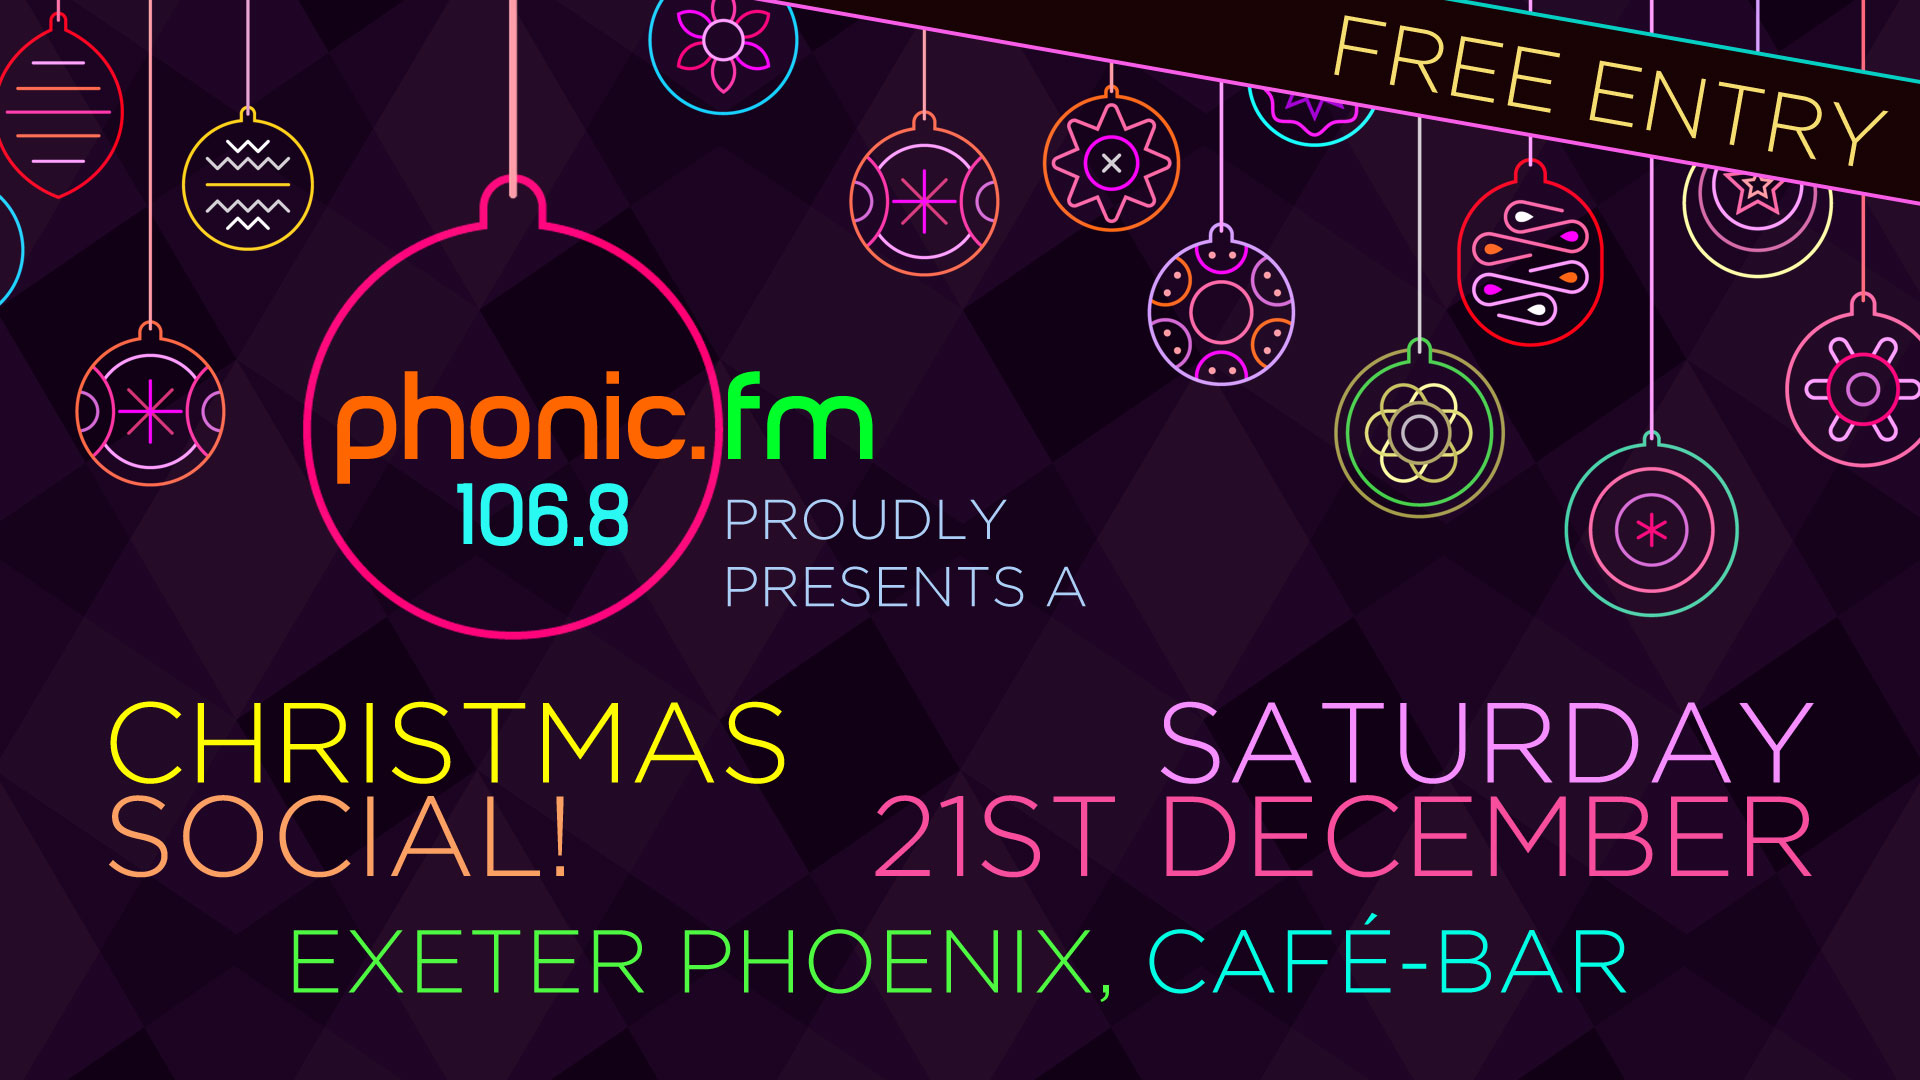 Phonic FM Free Xmas Party at Exeter Phoenix, join us in the cafe-bar on  Saturday 21 December